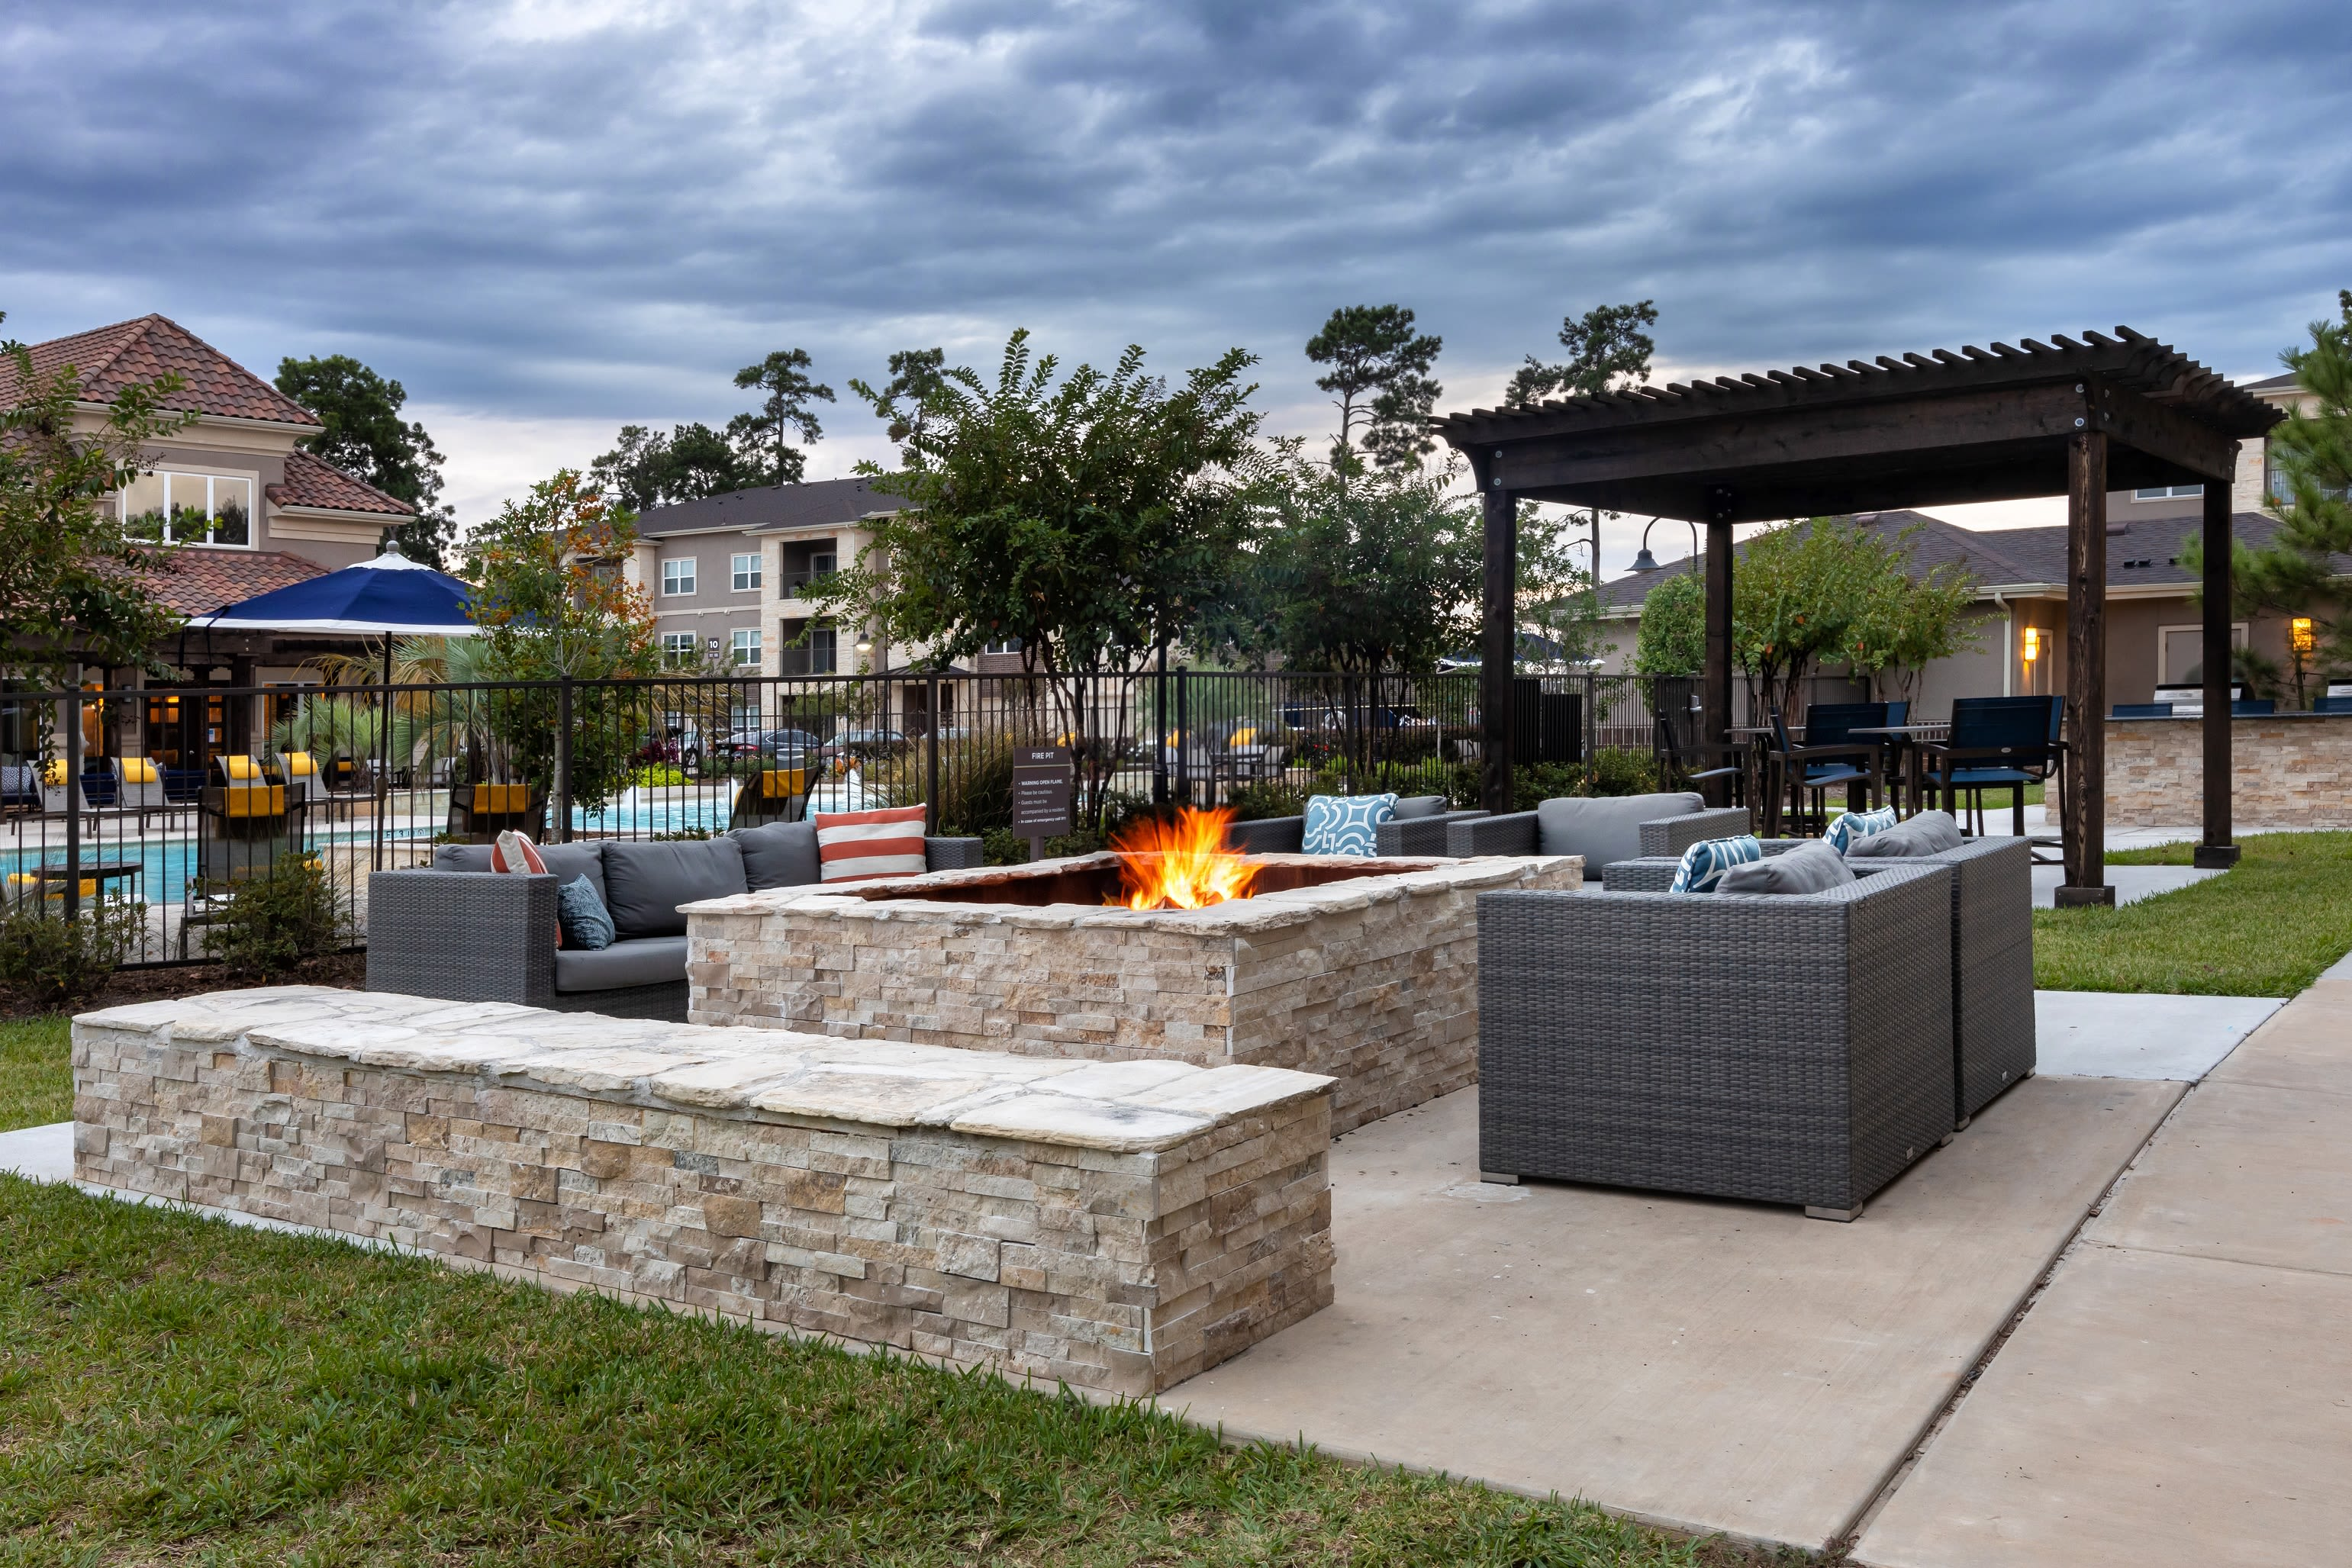 View virtual of the fire pit and outdoor grill area at Hilltops in Conroe, Texas